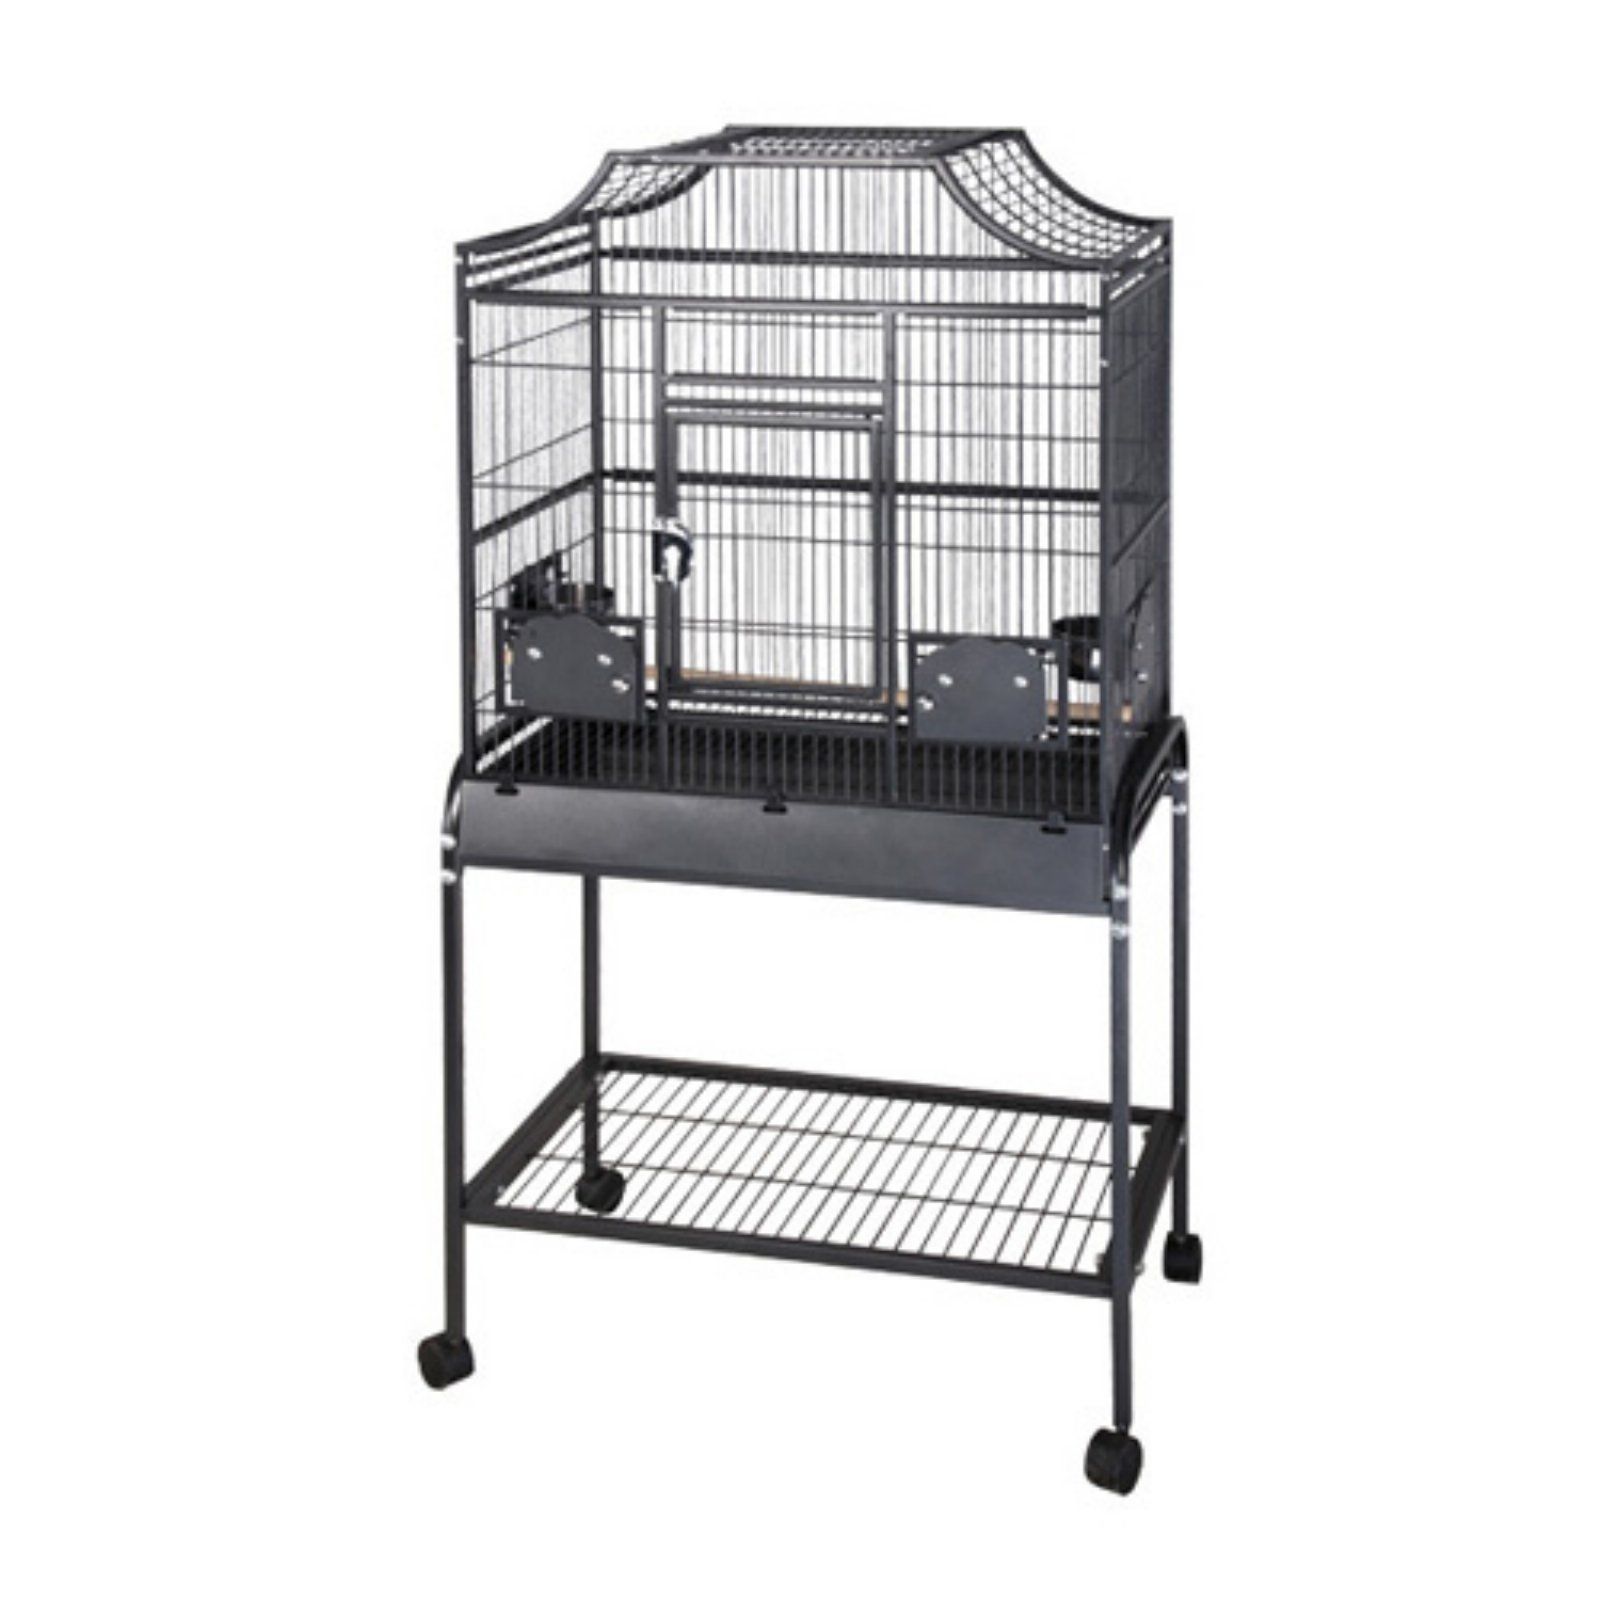 A and E Cage Co. Elegant Style Flight Bird Cage 2818 by A&E Cage